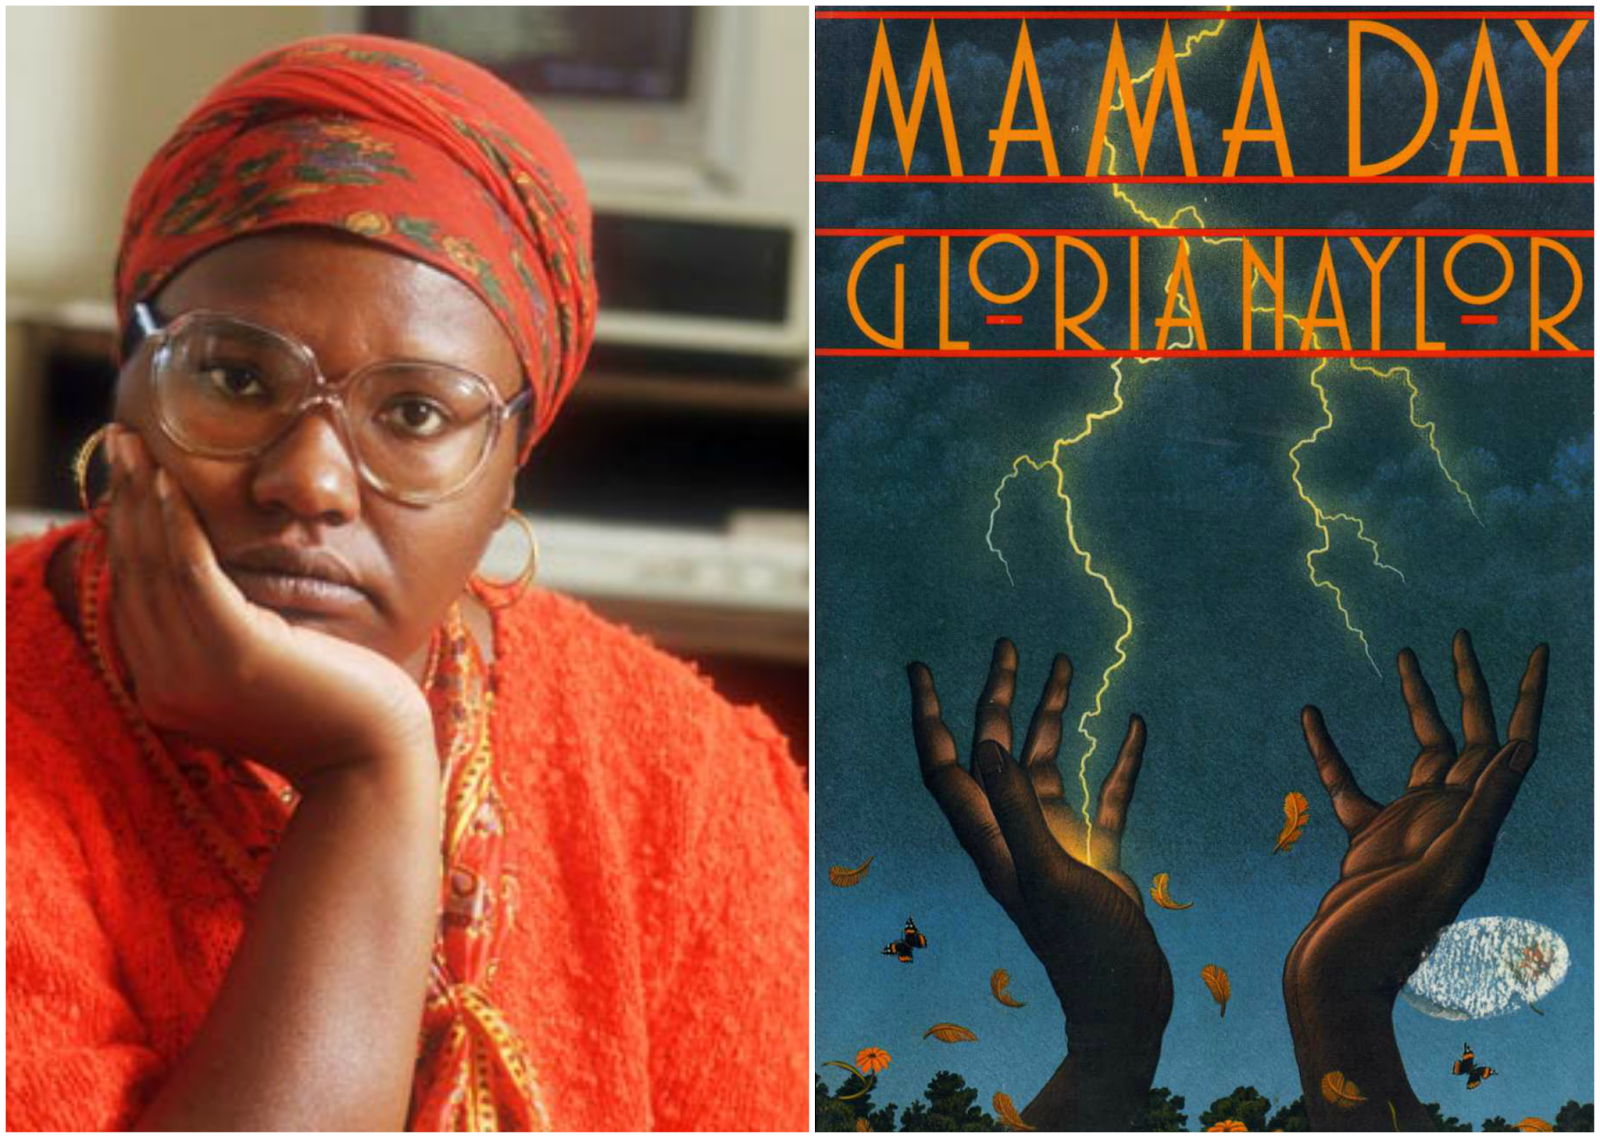 an examination of the multiple love stories in the novel mama day by gloria naylor Gloria naylor, titel: mama day, pris: 162,95 kr told from multiple perspectives, mama day is equal parts star-crossed love story, generational saga, and exploration of the supernatural hailed as gloria naylor's 'richest and most complex' novel, it is the kind of book that stays with.